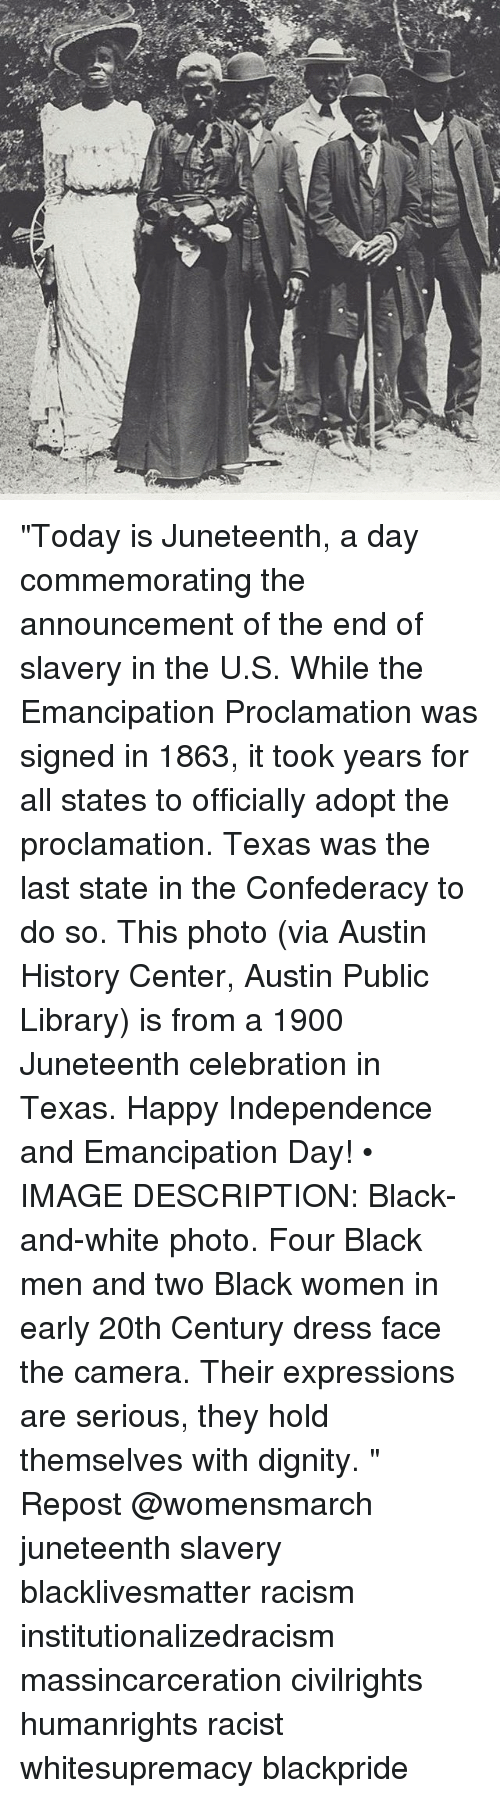 "Confederacy: f/  ew ""Today is Juneteenth, a day commemorating the announcement of the end of slavery in the U.S. While the Emancipation Proclamation was signed in 1863, it took years for all states to officially adopt the proclamation. Texas was the last state in the Confederacy to do so. This photo (via Austin History Center, Austin Public Library) is from a 1900 Juneteenth celebration in Texas. Happy Independence and Emancipation Day! • IMAGE DESCRIPTION: Black-and-white photo. Four Black men and two Black women in early 20th Century dress face the camera. Their expressions are serious, they hold themselves with dignity. "" Repost @womensmarch juneteenth slavery blacklivesmatter racism institutionalizedracism massincarceration civilrights humanrights racist whitesupremacy blackpride"